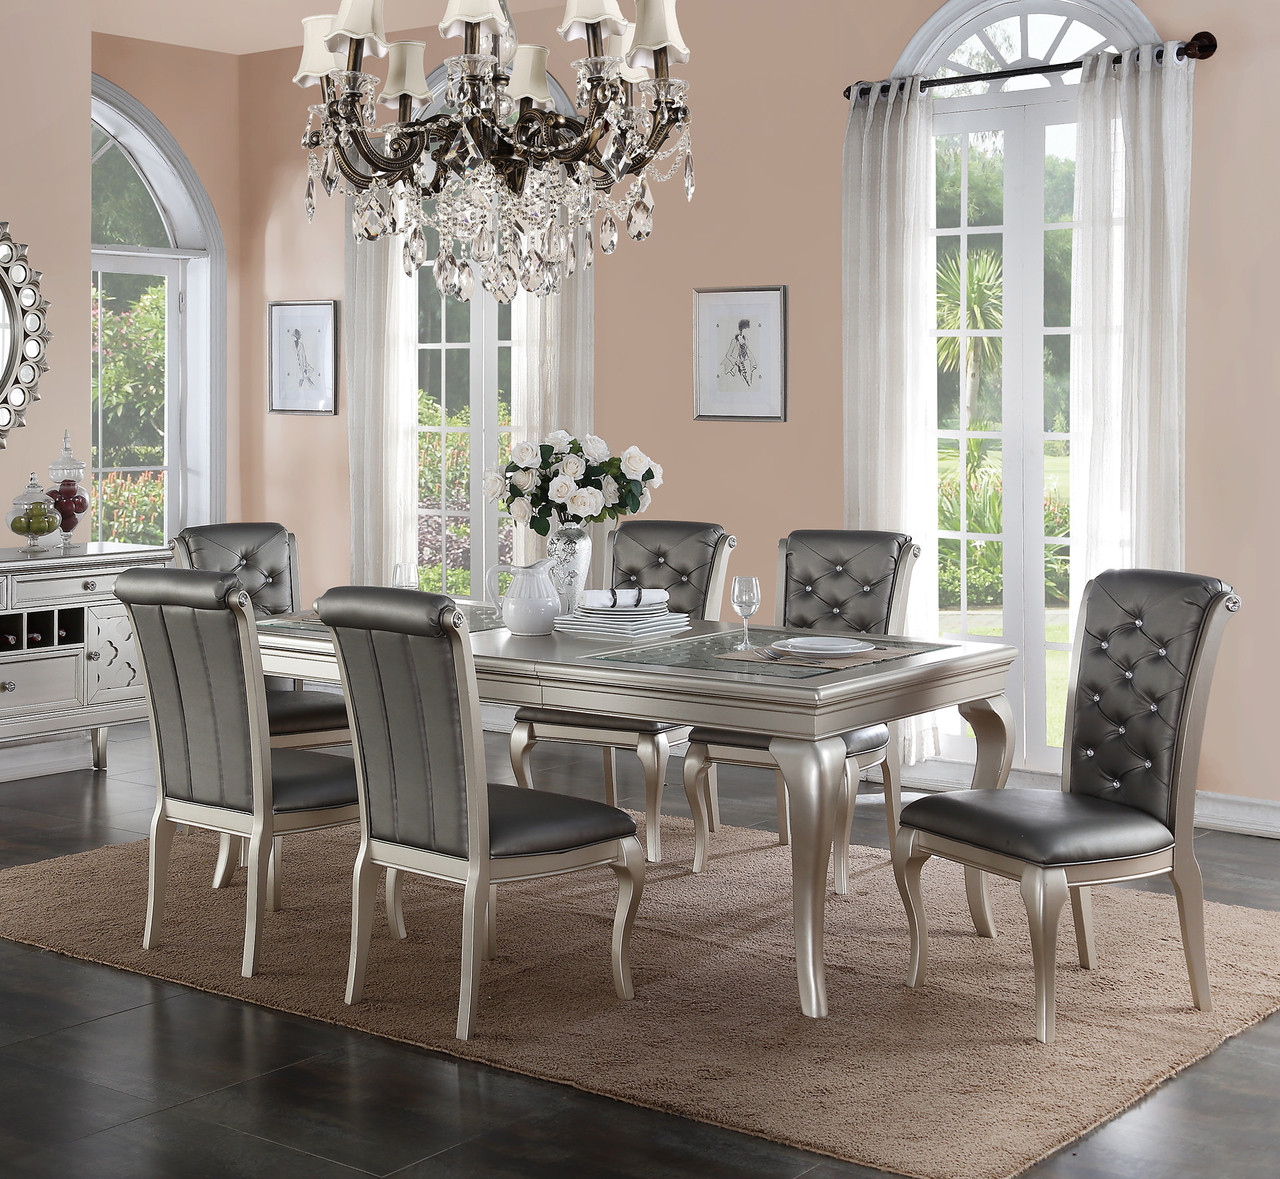 Poundex F2151 Metallic Silver Dining Set